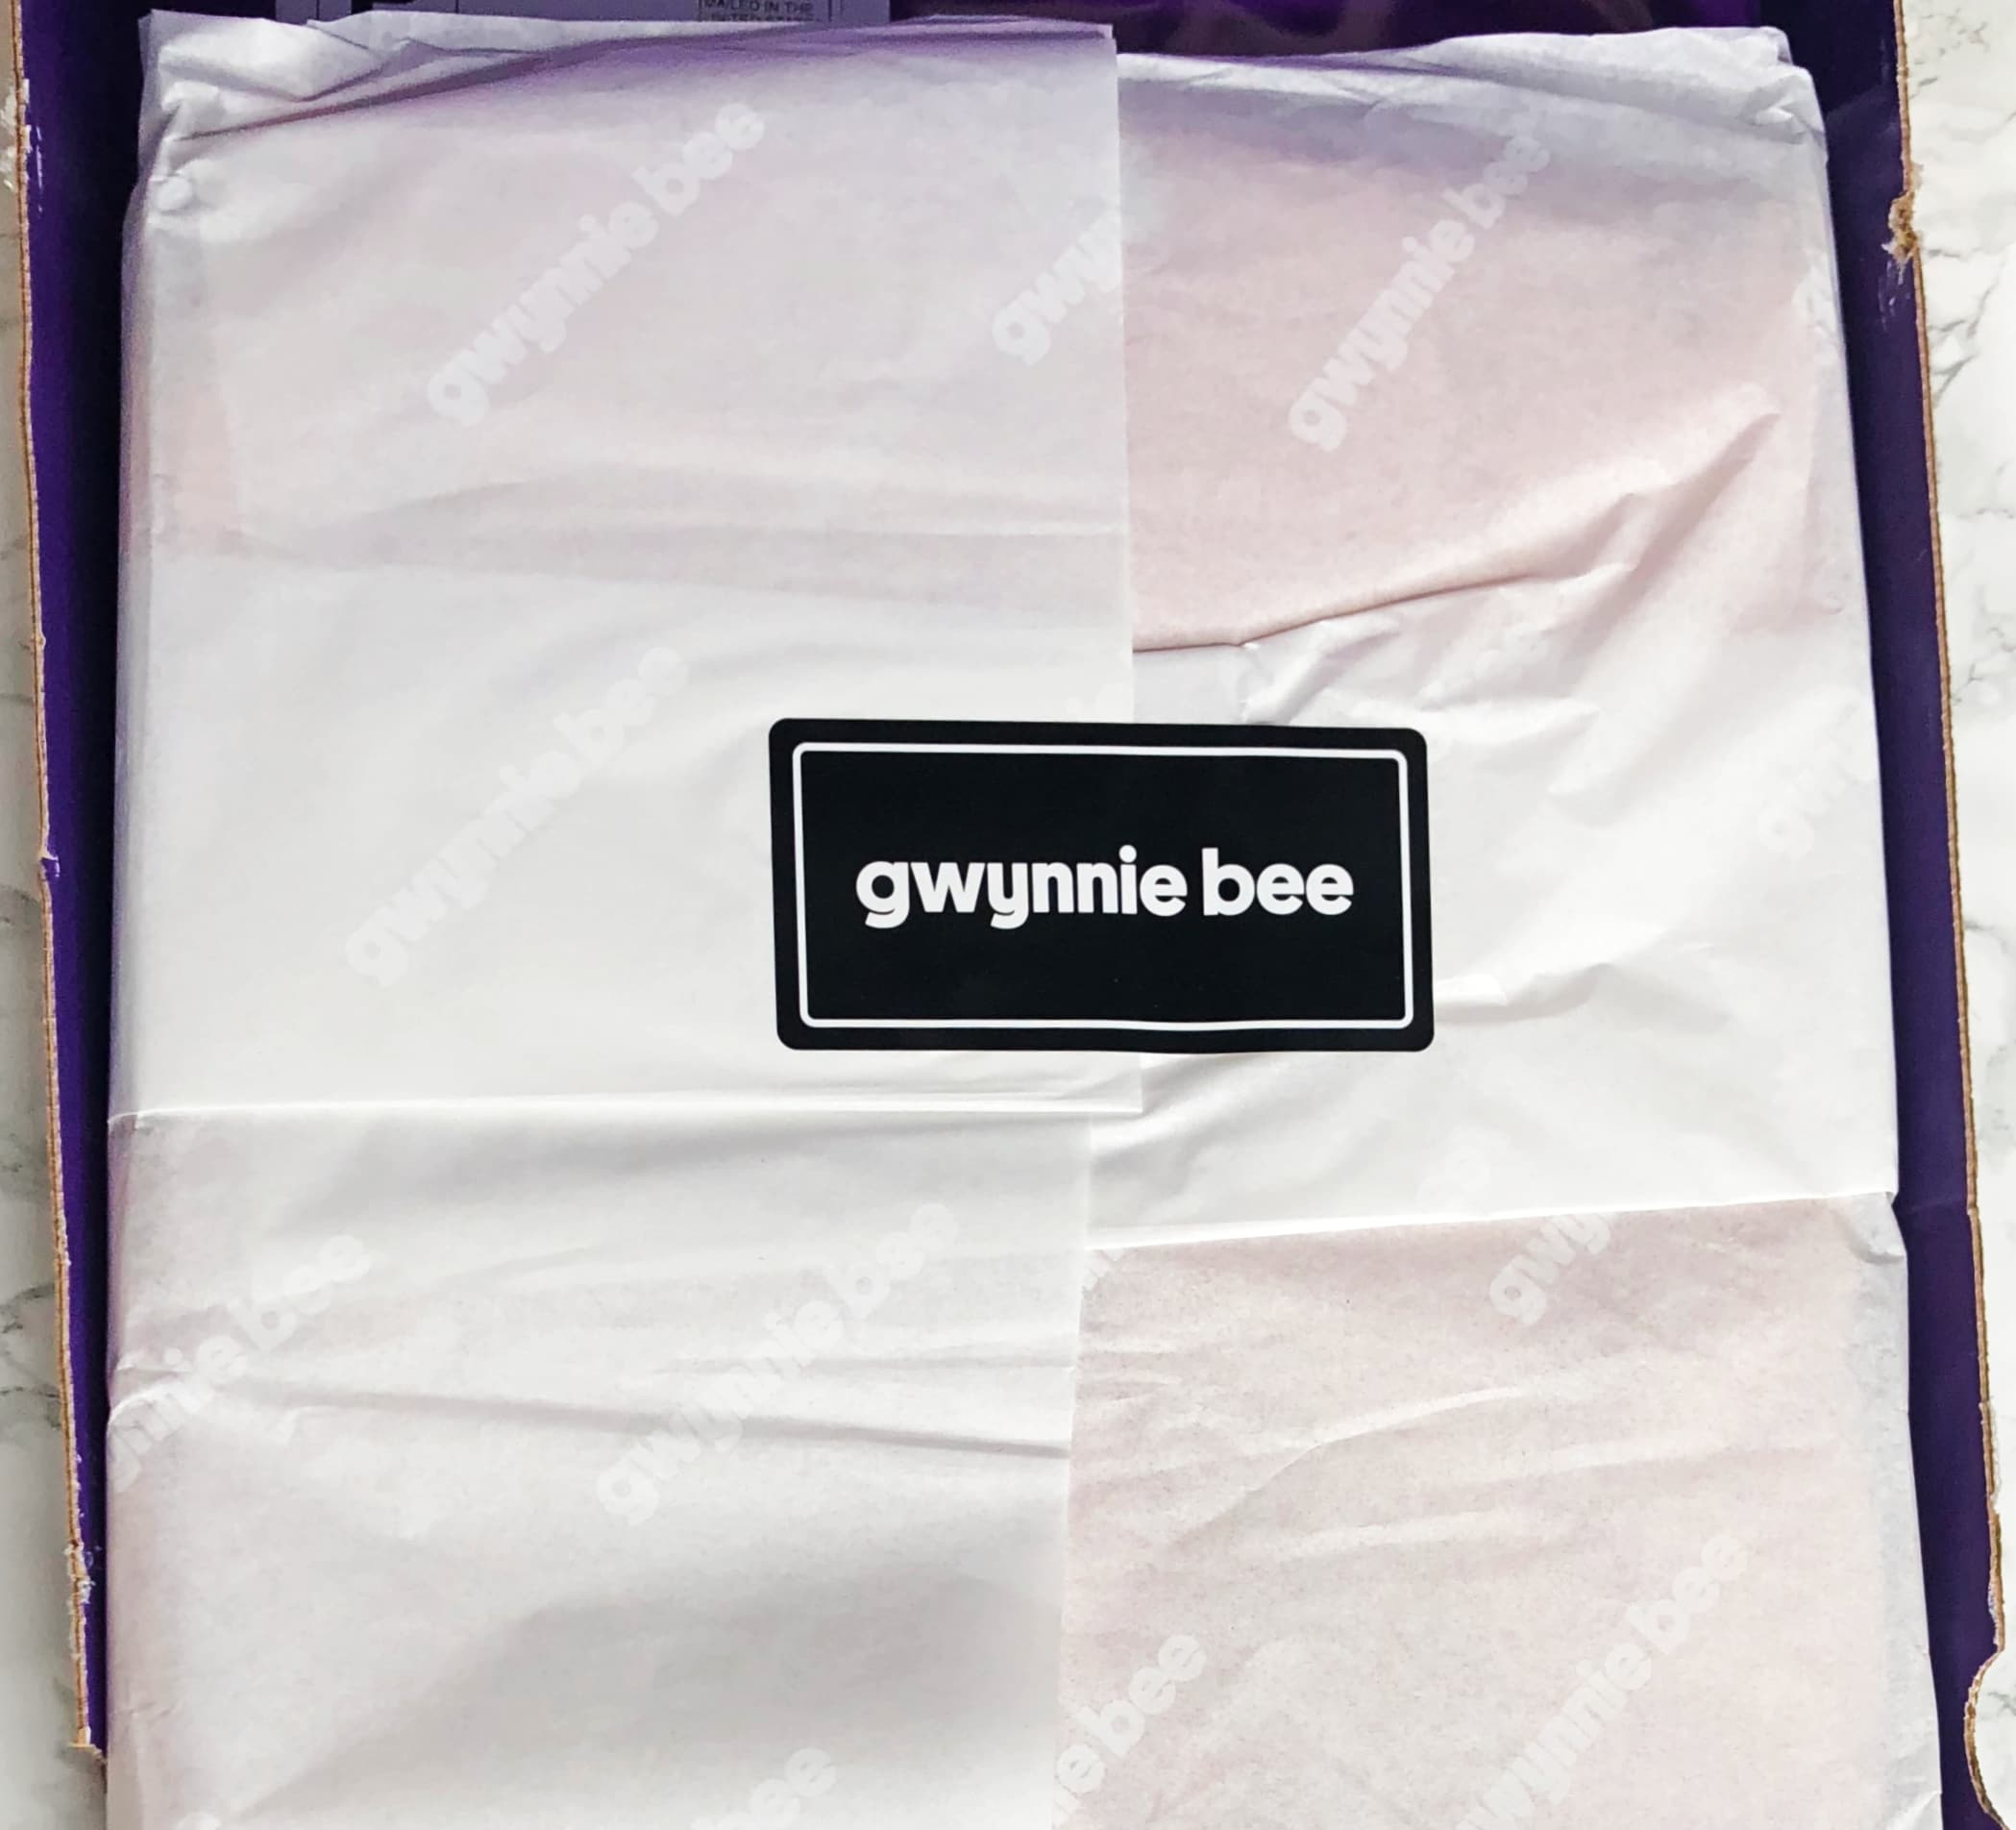 Gwynnie Bee Reviews - Unboxing